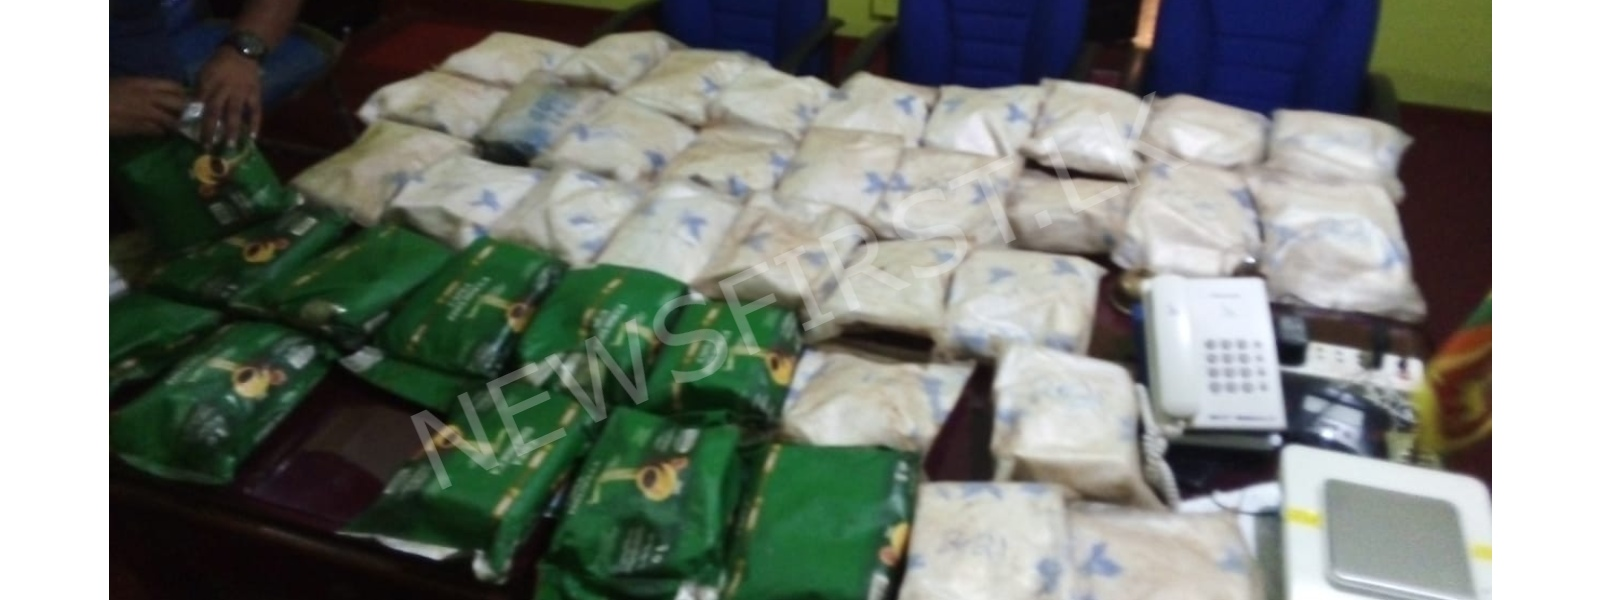 Two arrested with over 45 kg of Heroin in Horana